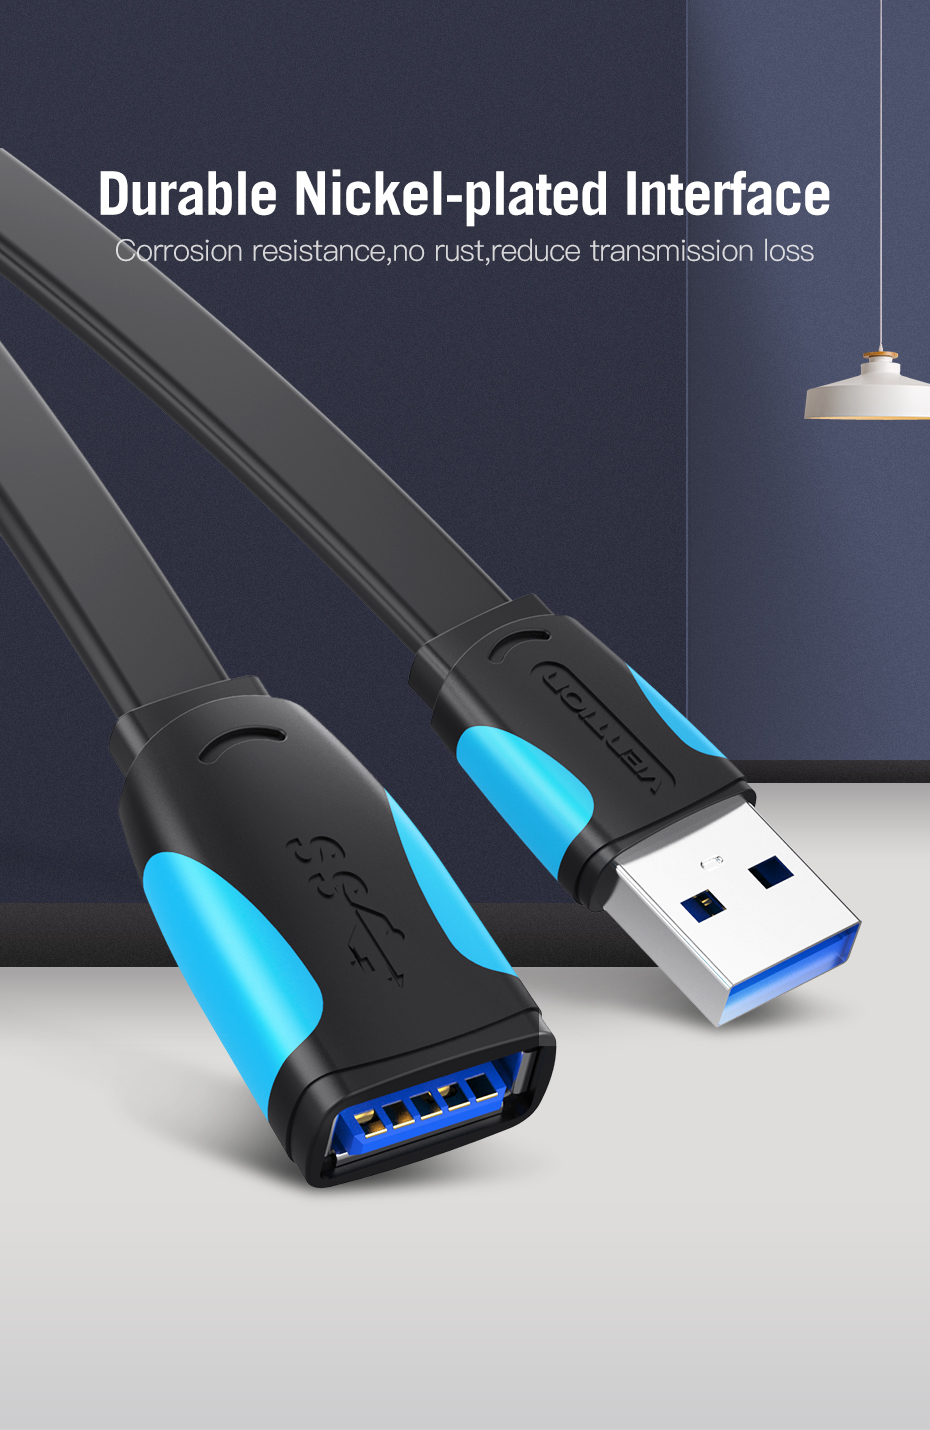 Vention USB 3.0 Cable Super Speed USB Extension Cable Male to Female 0.5m 1m 1.5m 2m 3m USB Data Sync Transfer Extender Cable